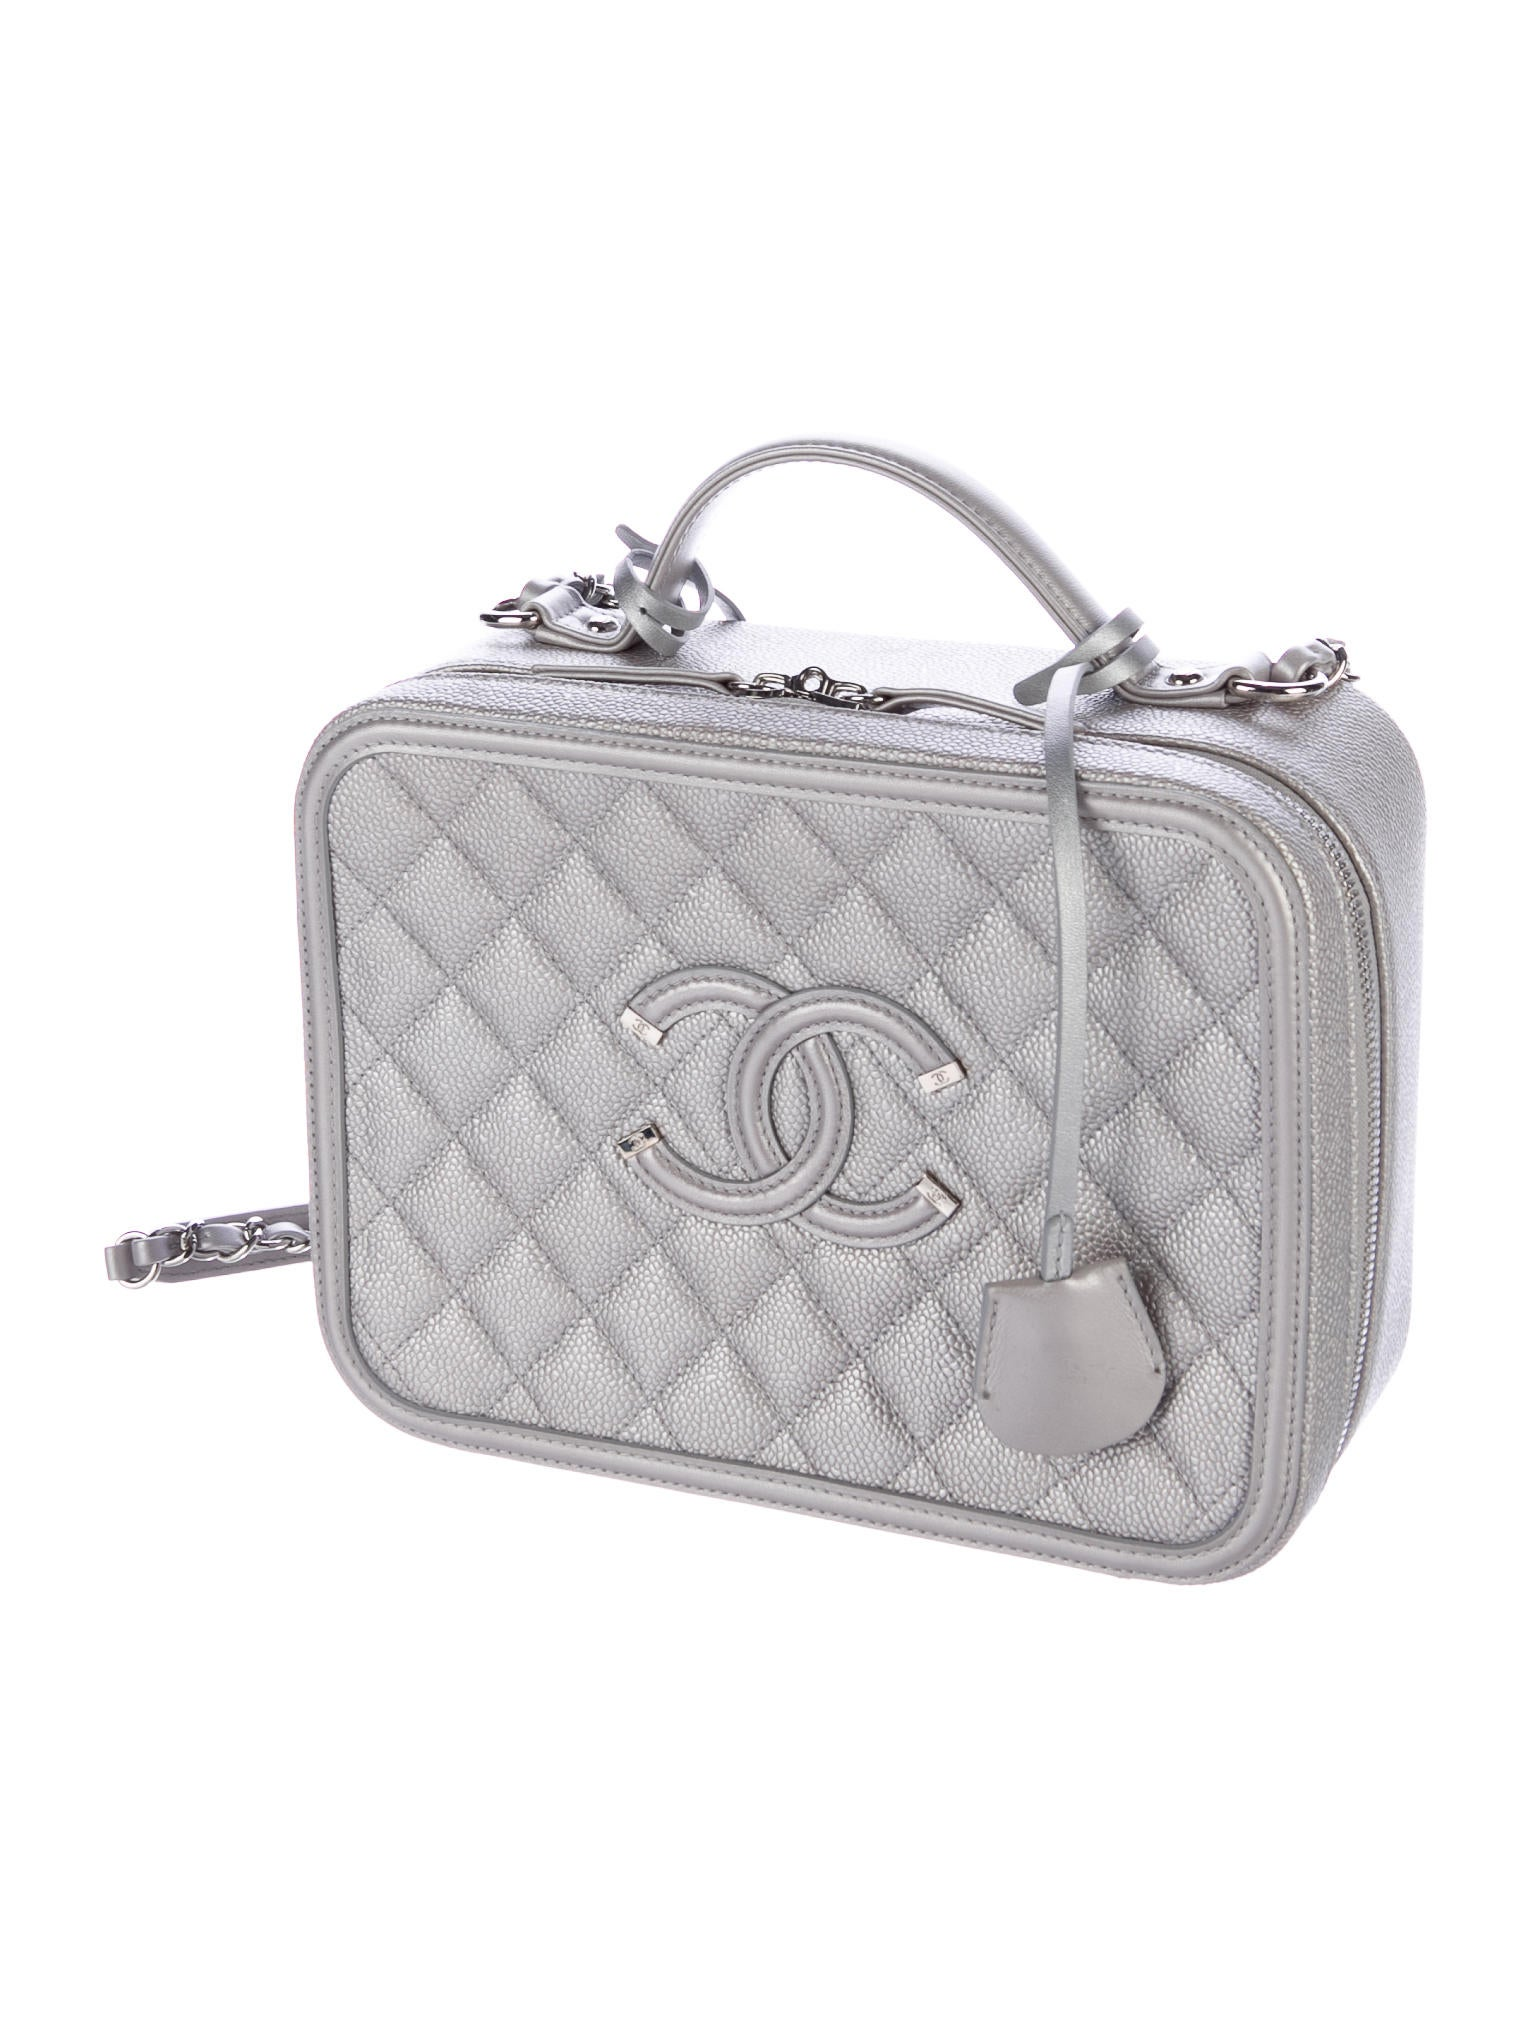 Chanel 2016 Cc Filigree Vanity Case Bag Handbags